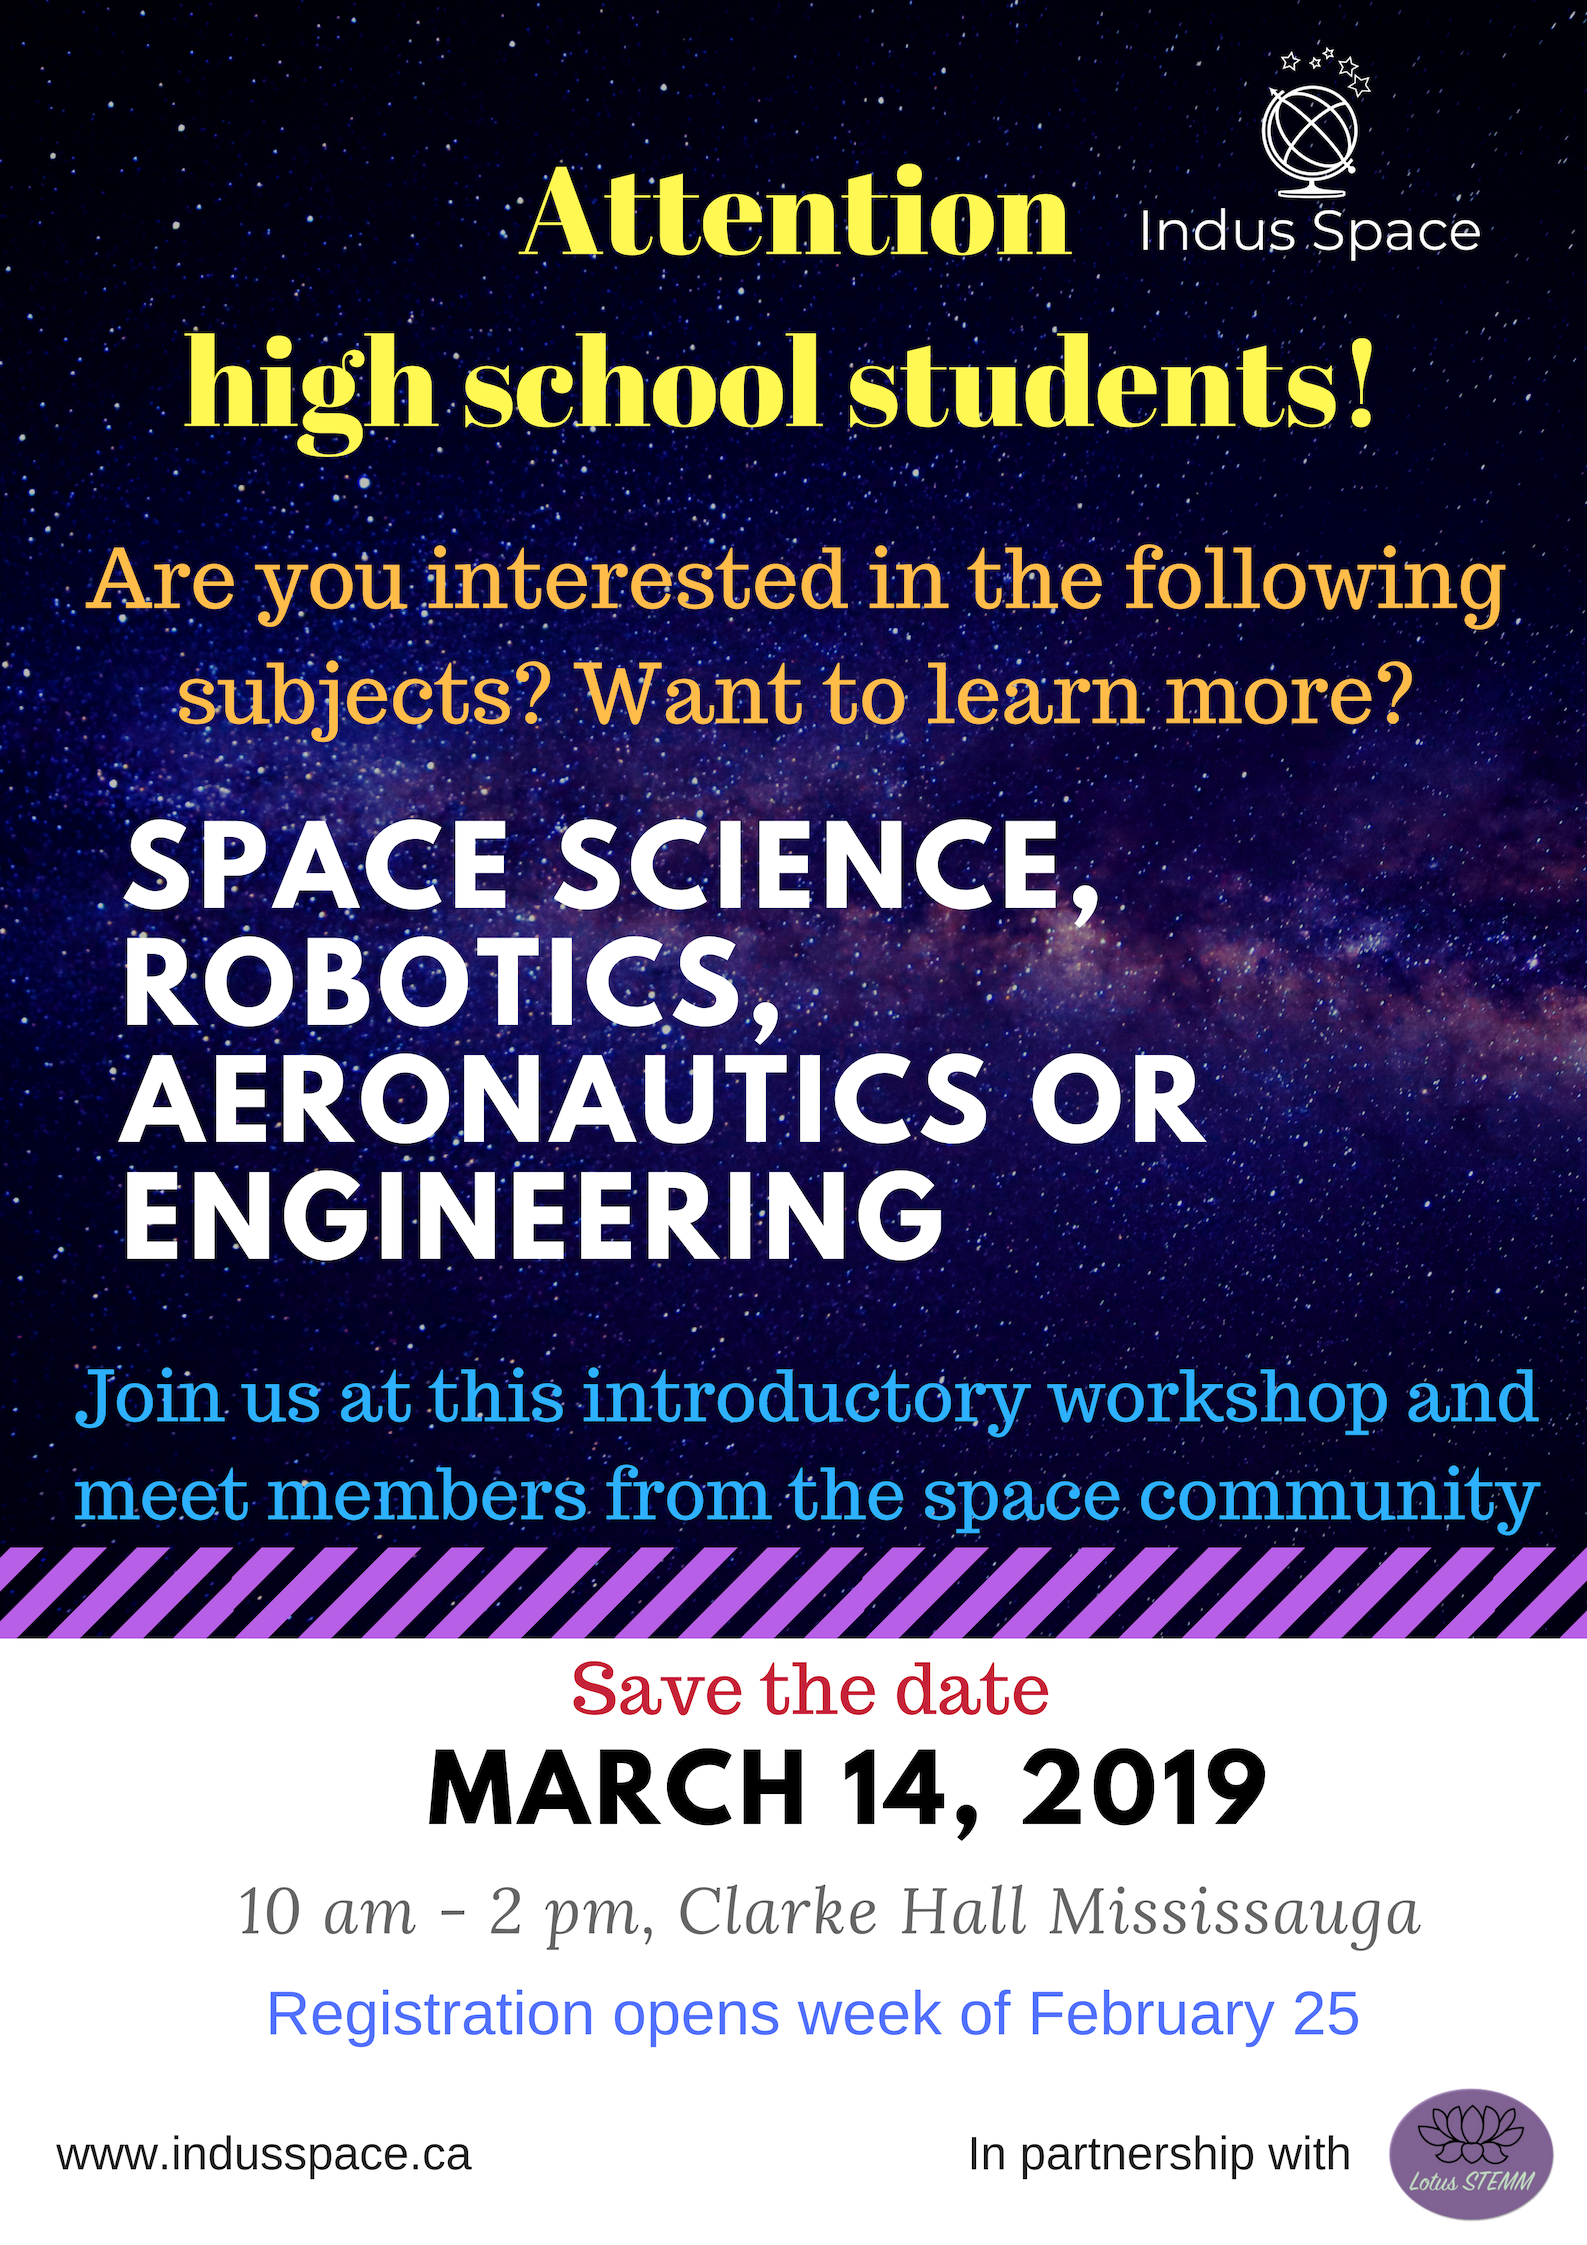 Space Science Workshop March 14, 2019.png